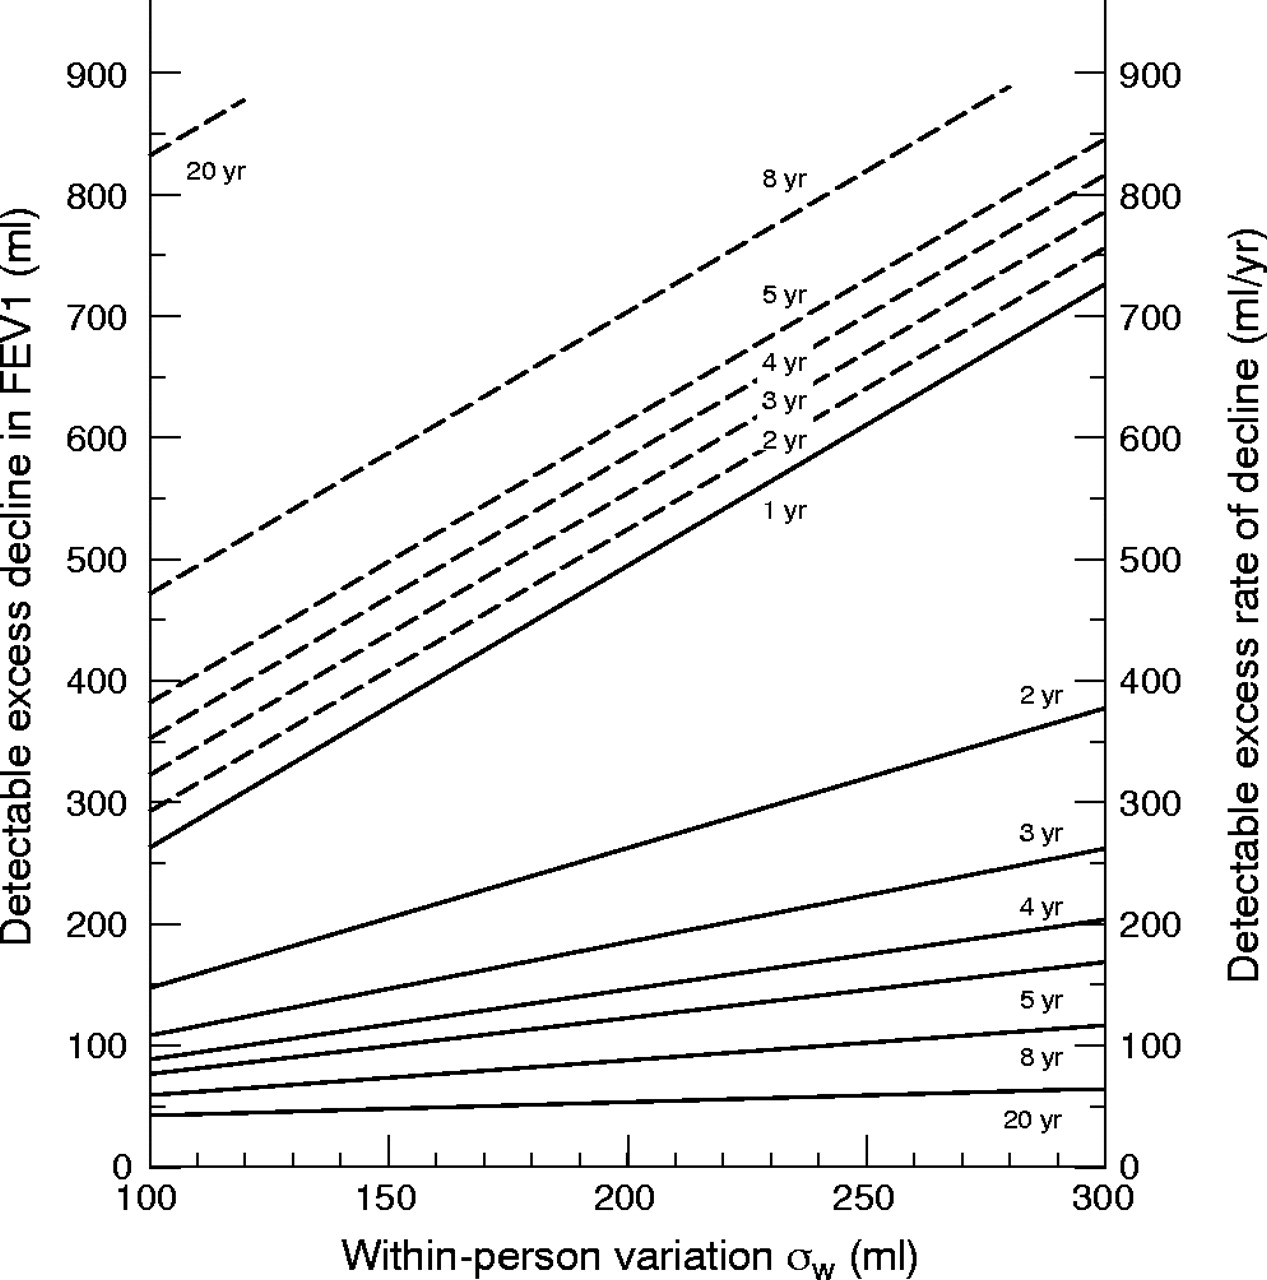 The precision of longitudinal lung function measurements